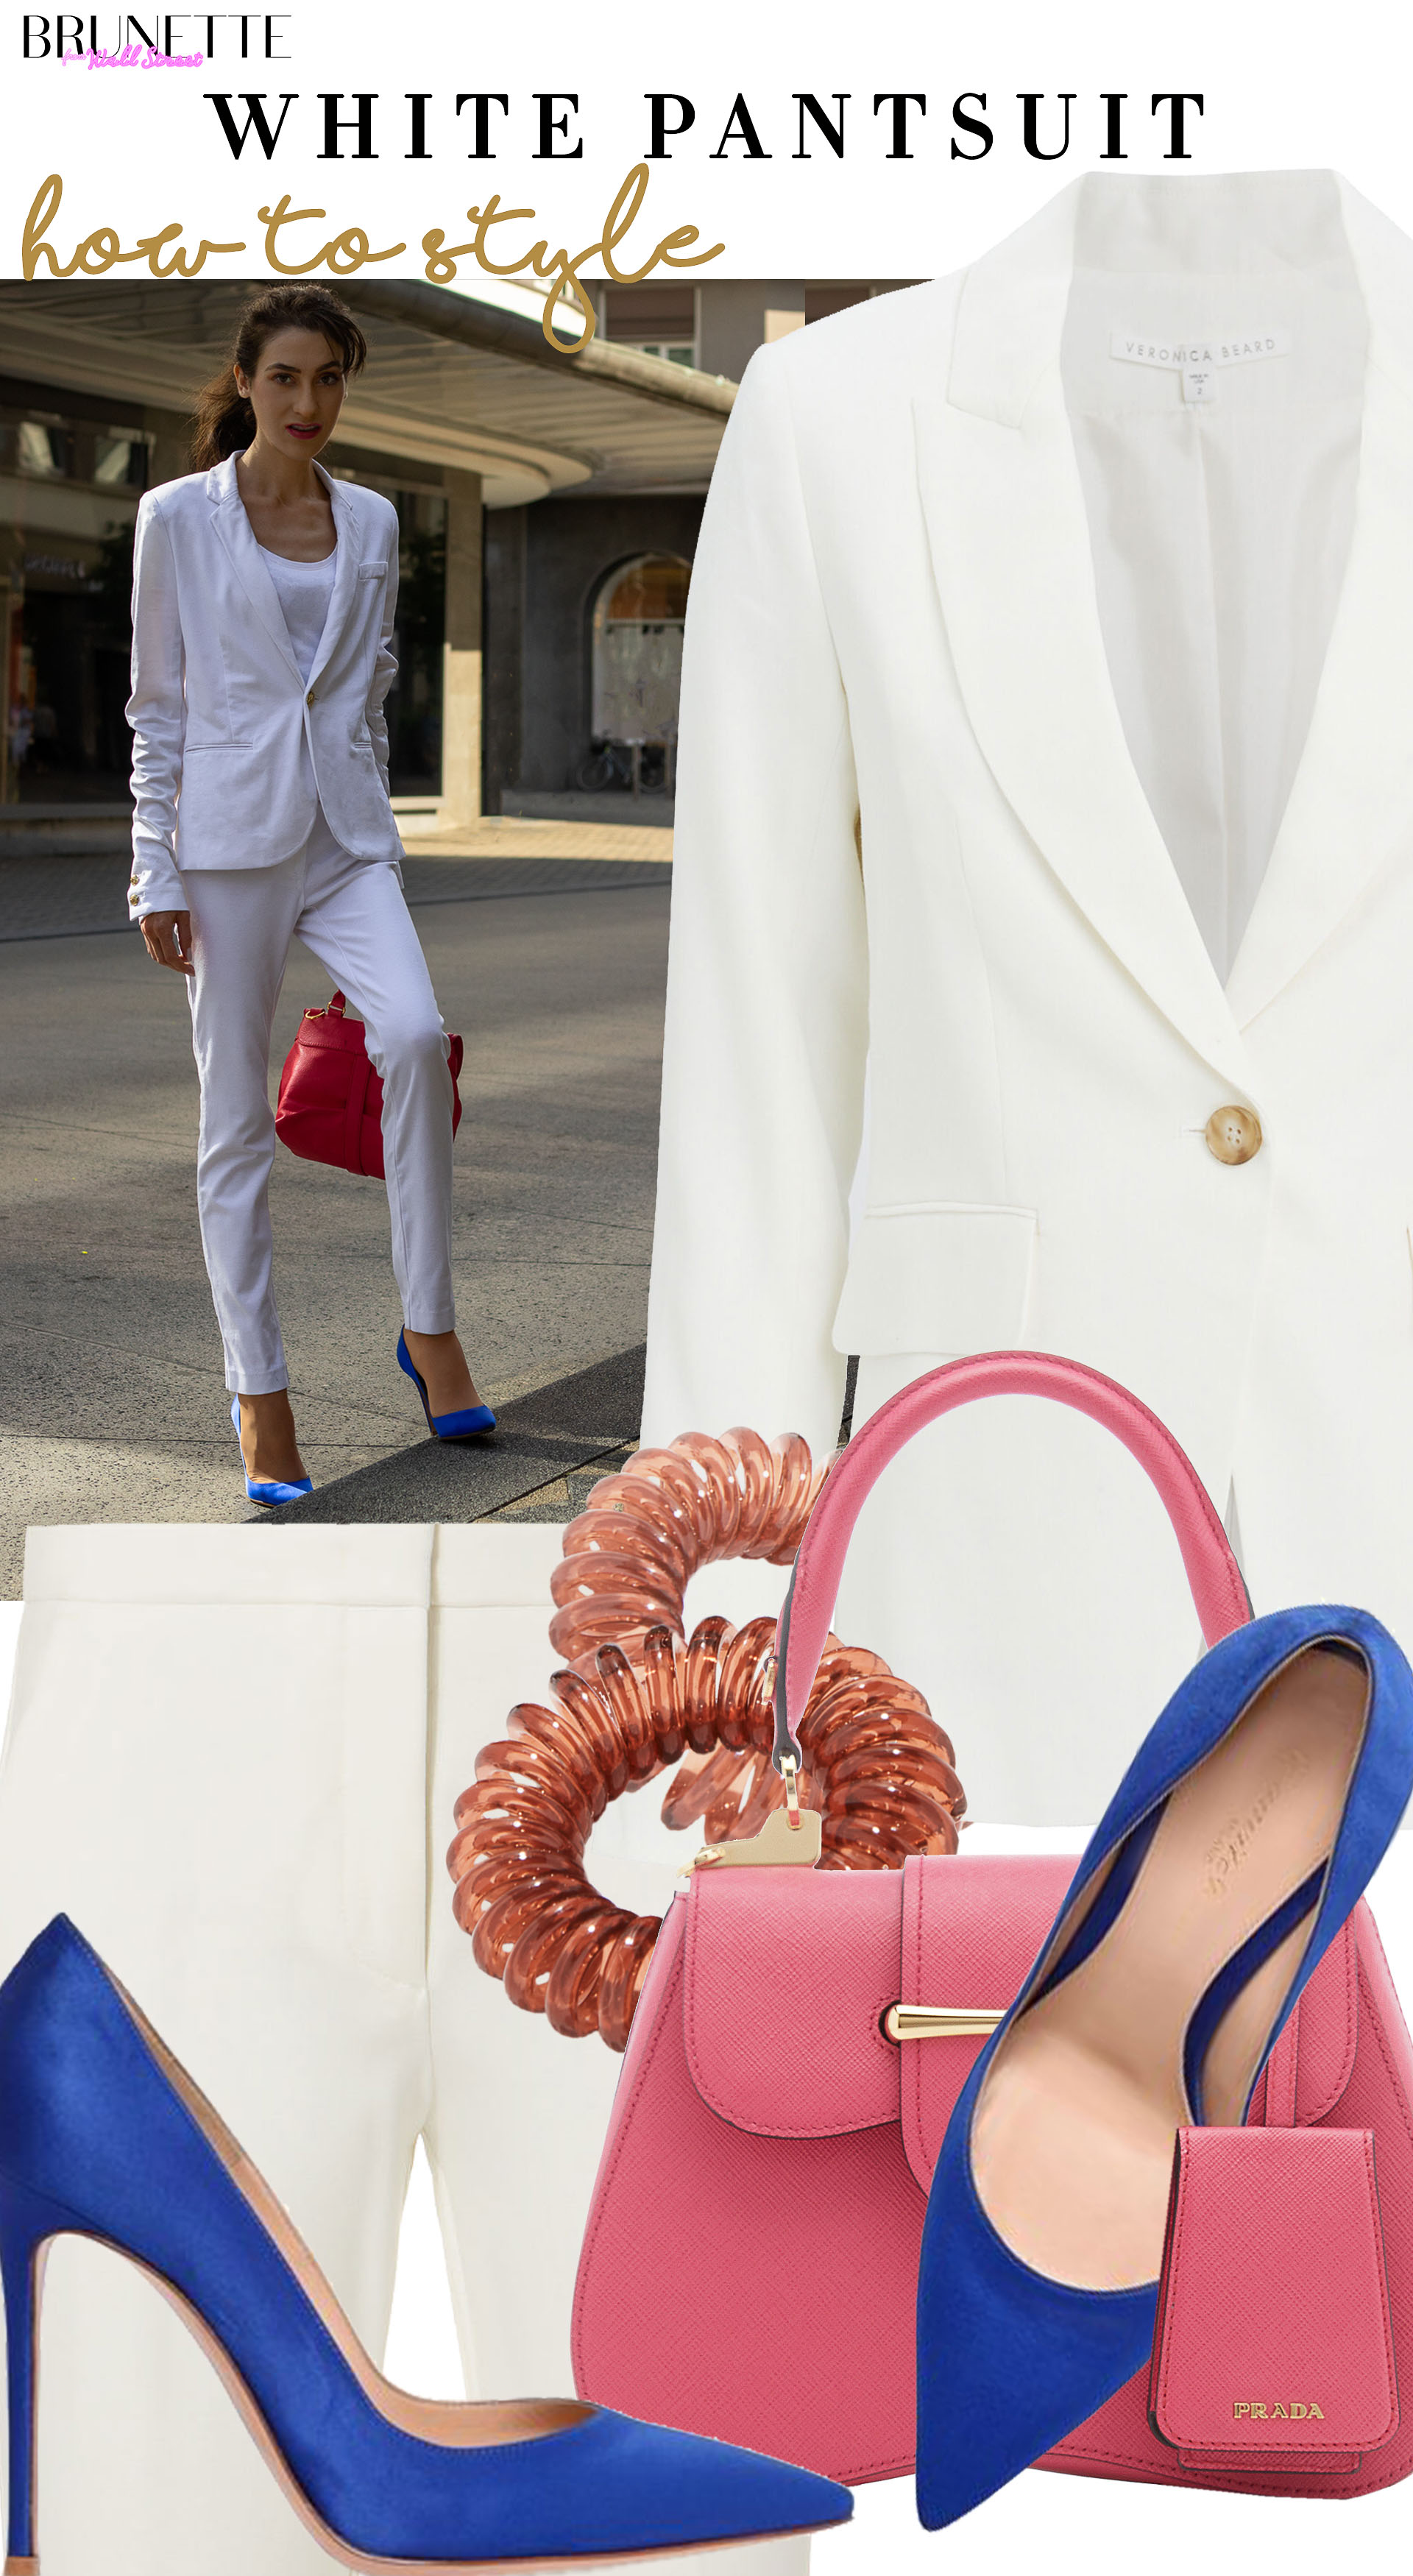 Brunette from Wall Street how to style white pantsuit blue gianvito rossi pumps prada sidonie saffiano bag